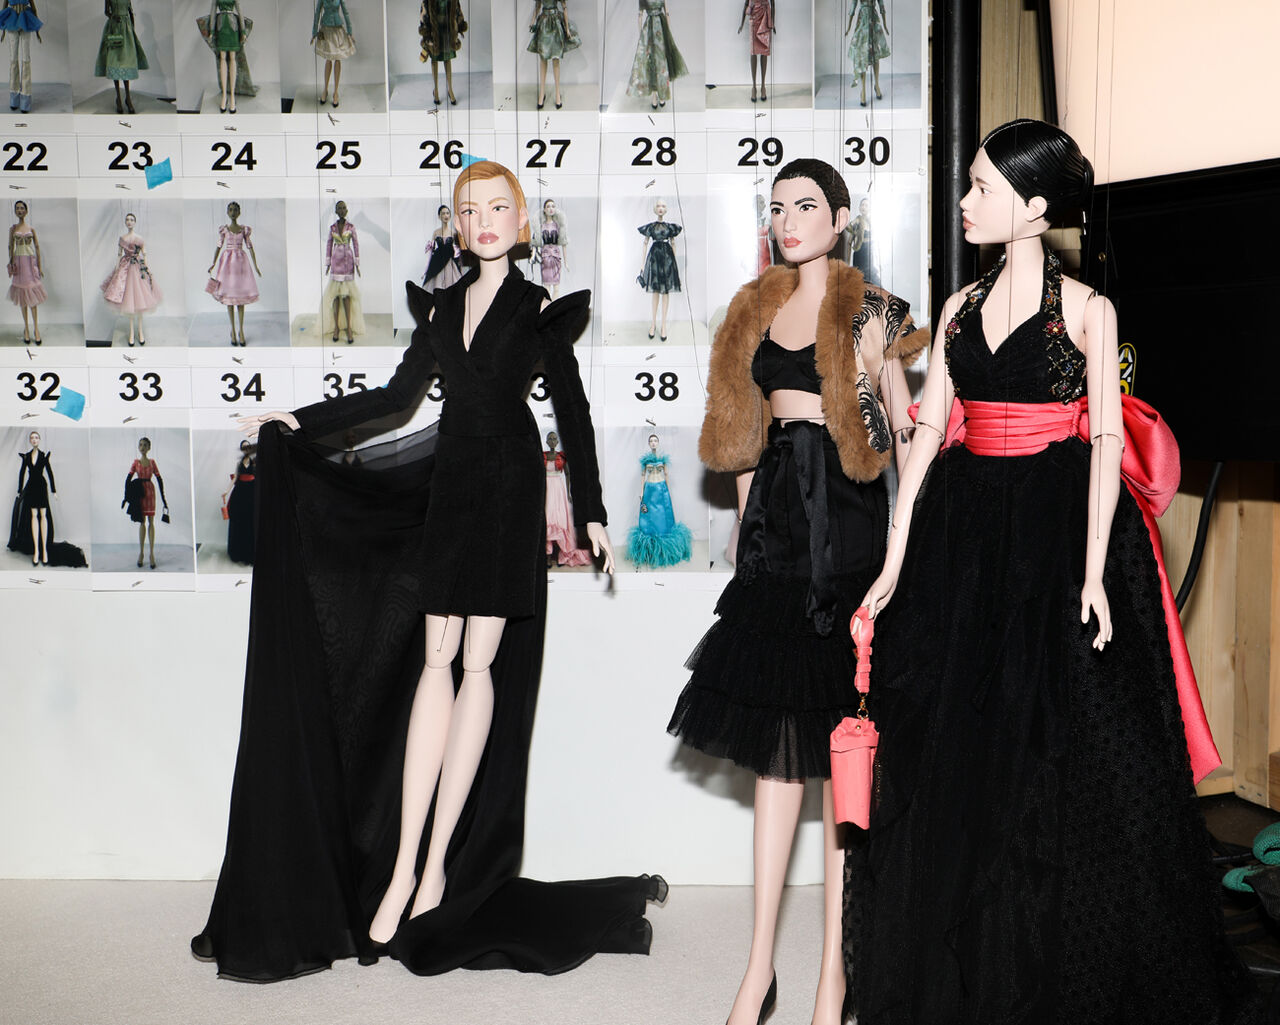 Three puppets wearing dresses, in the background you can see a wall showing outfits.